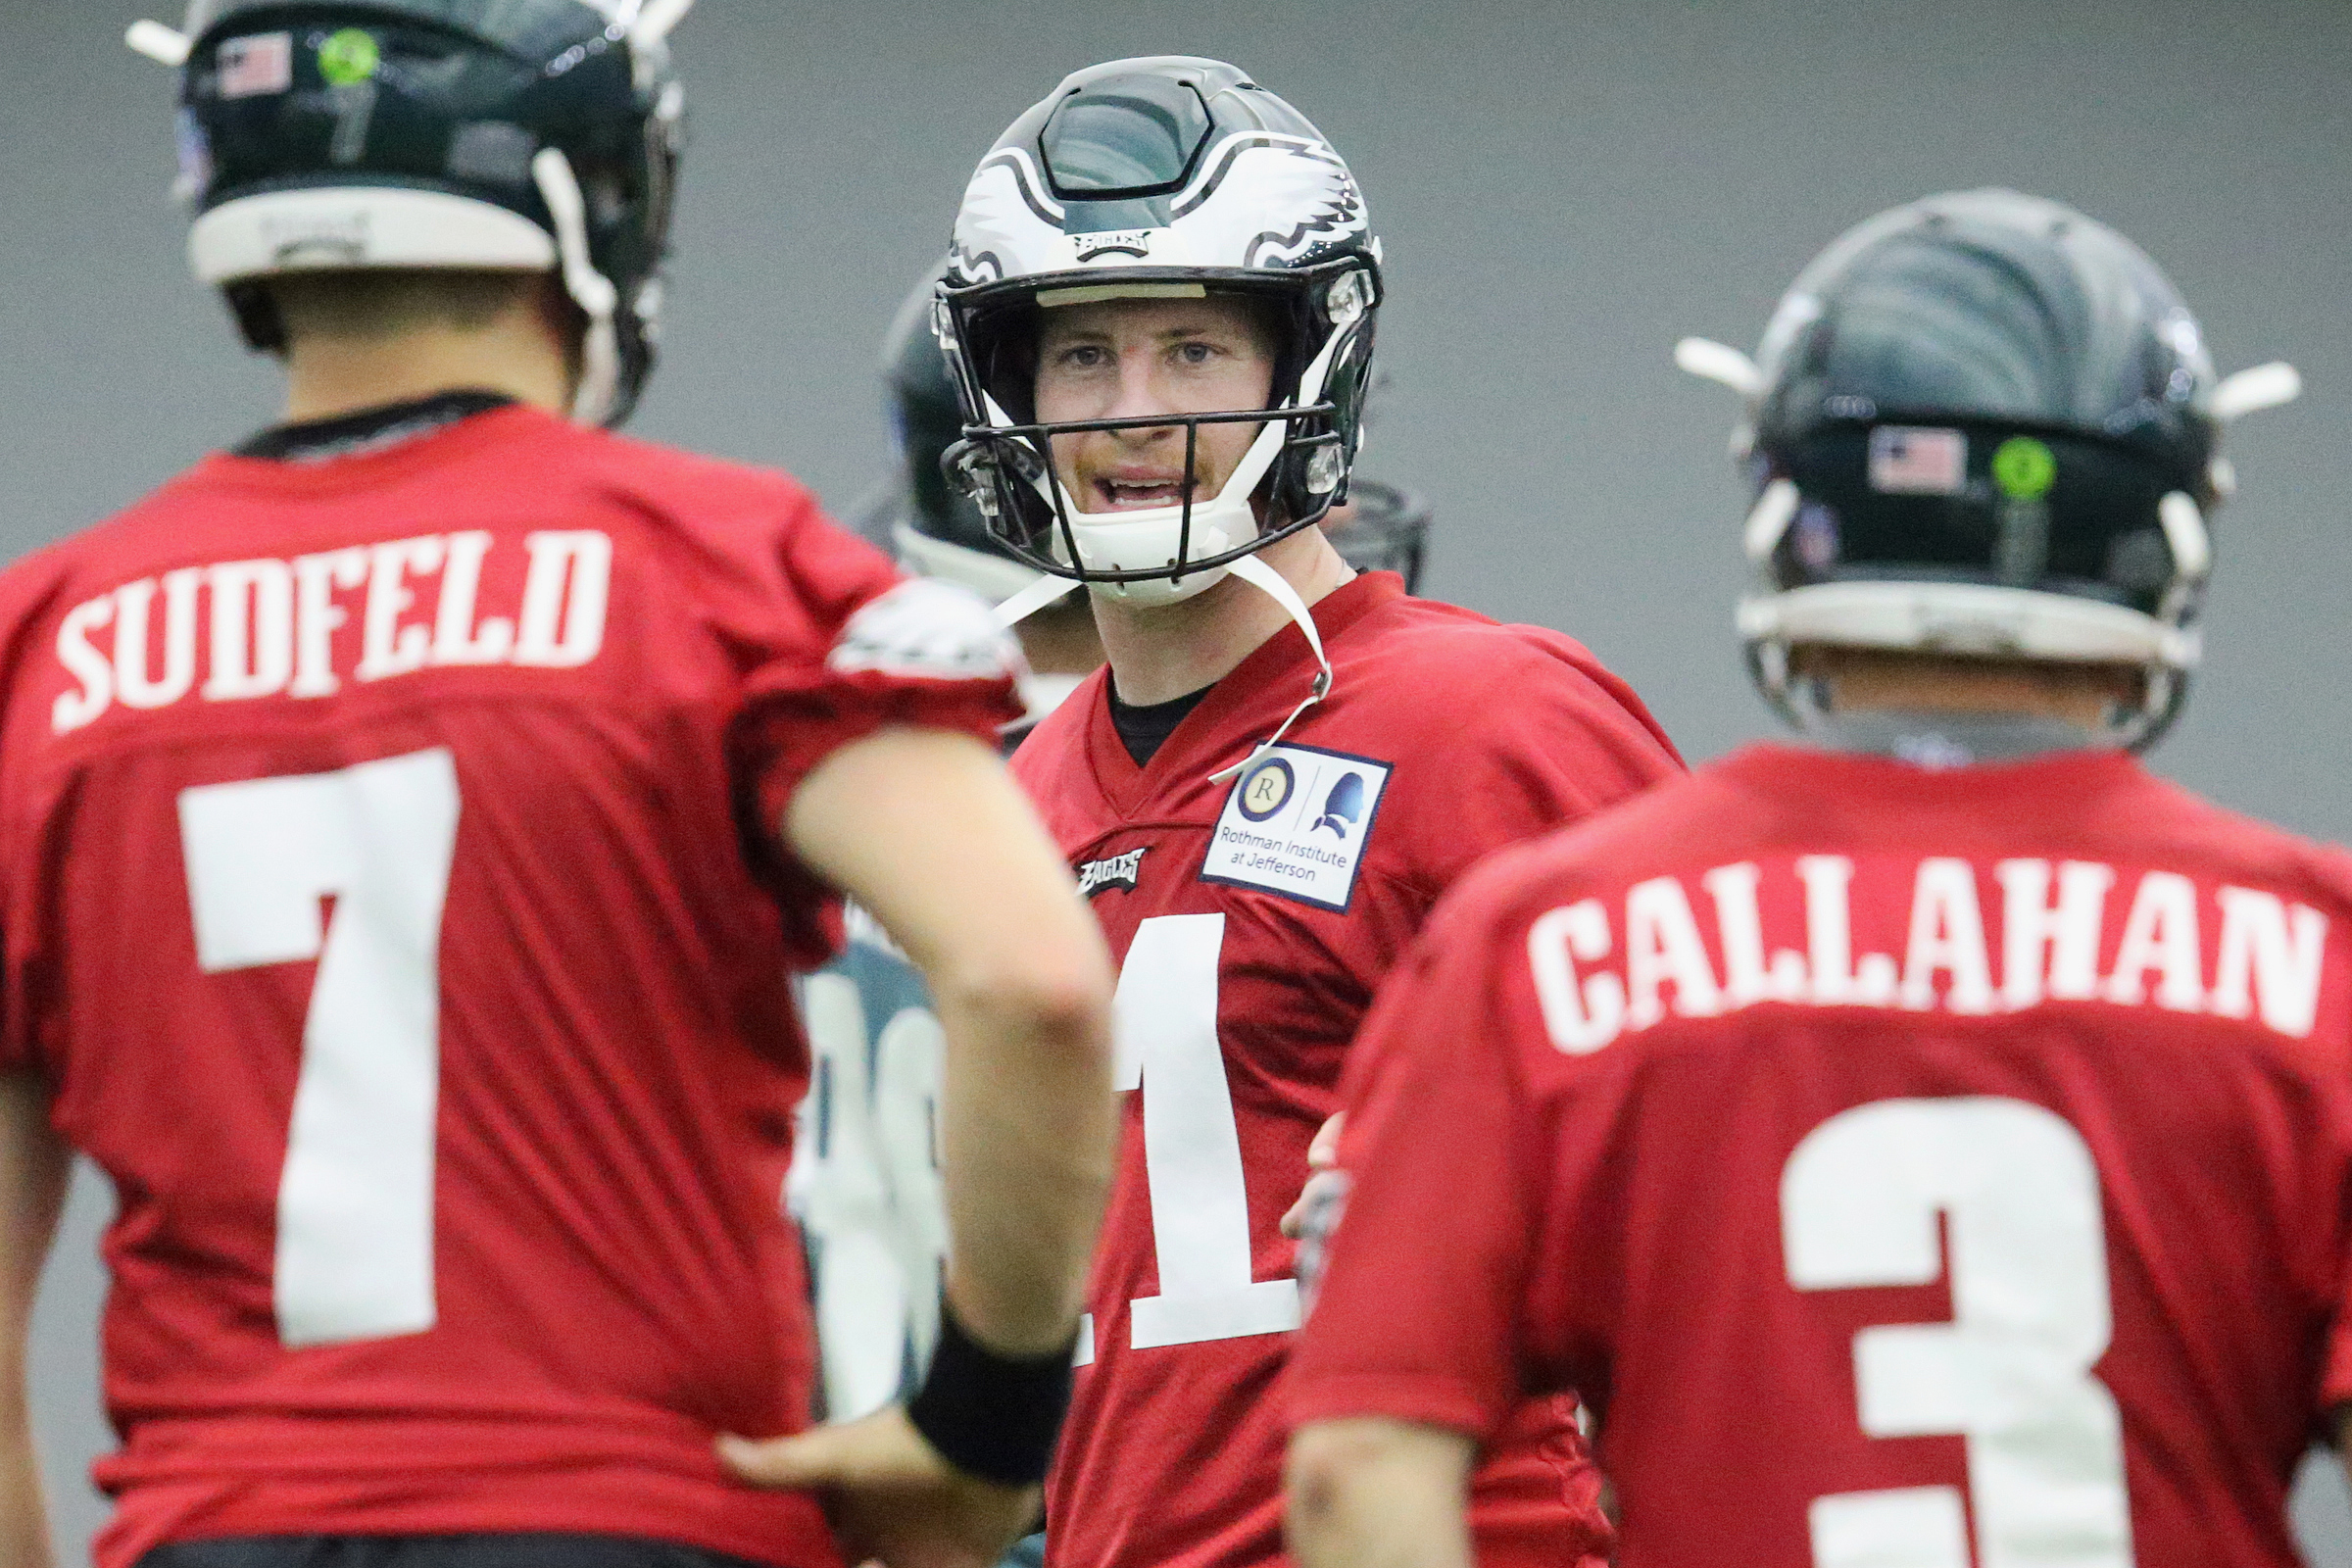 Eagles quarterback Carson Wentz (11) talks to backups Nate Sudfeld (7) and Joe Callahan (3) during practice at the NovaCare Complex on Tuesday.